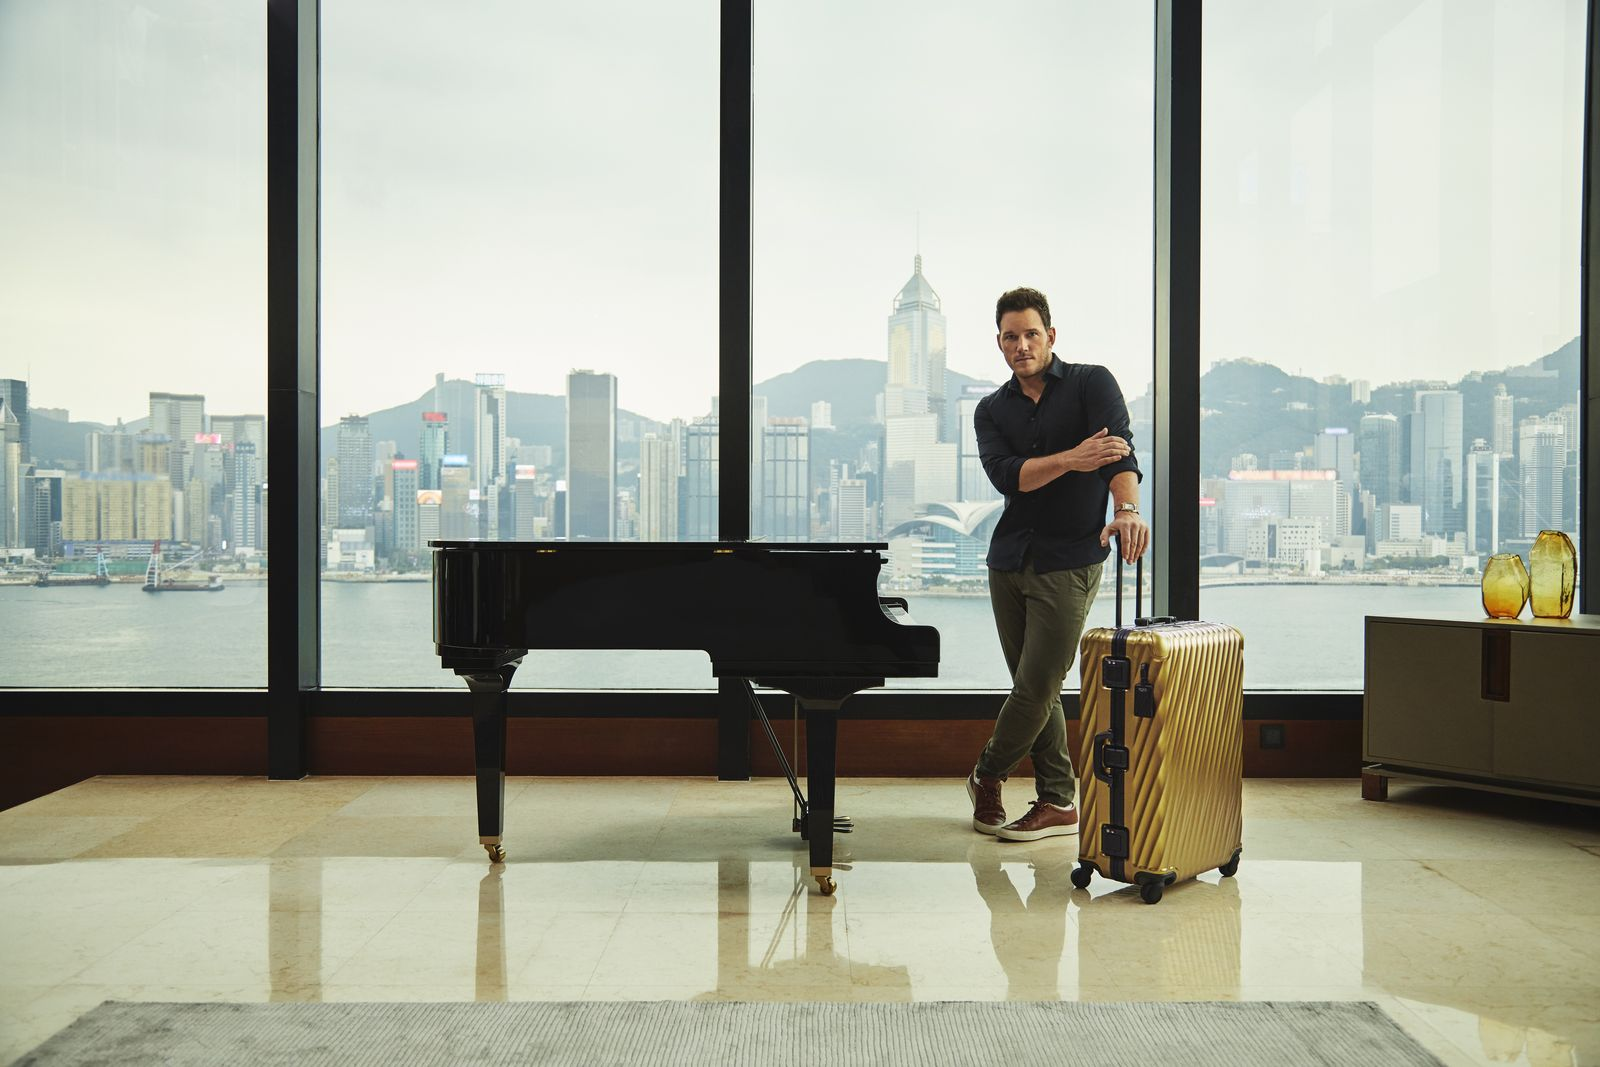 Globetrotters can rest easy with TUMI's reliable travel gear